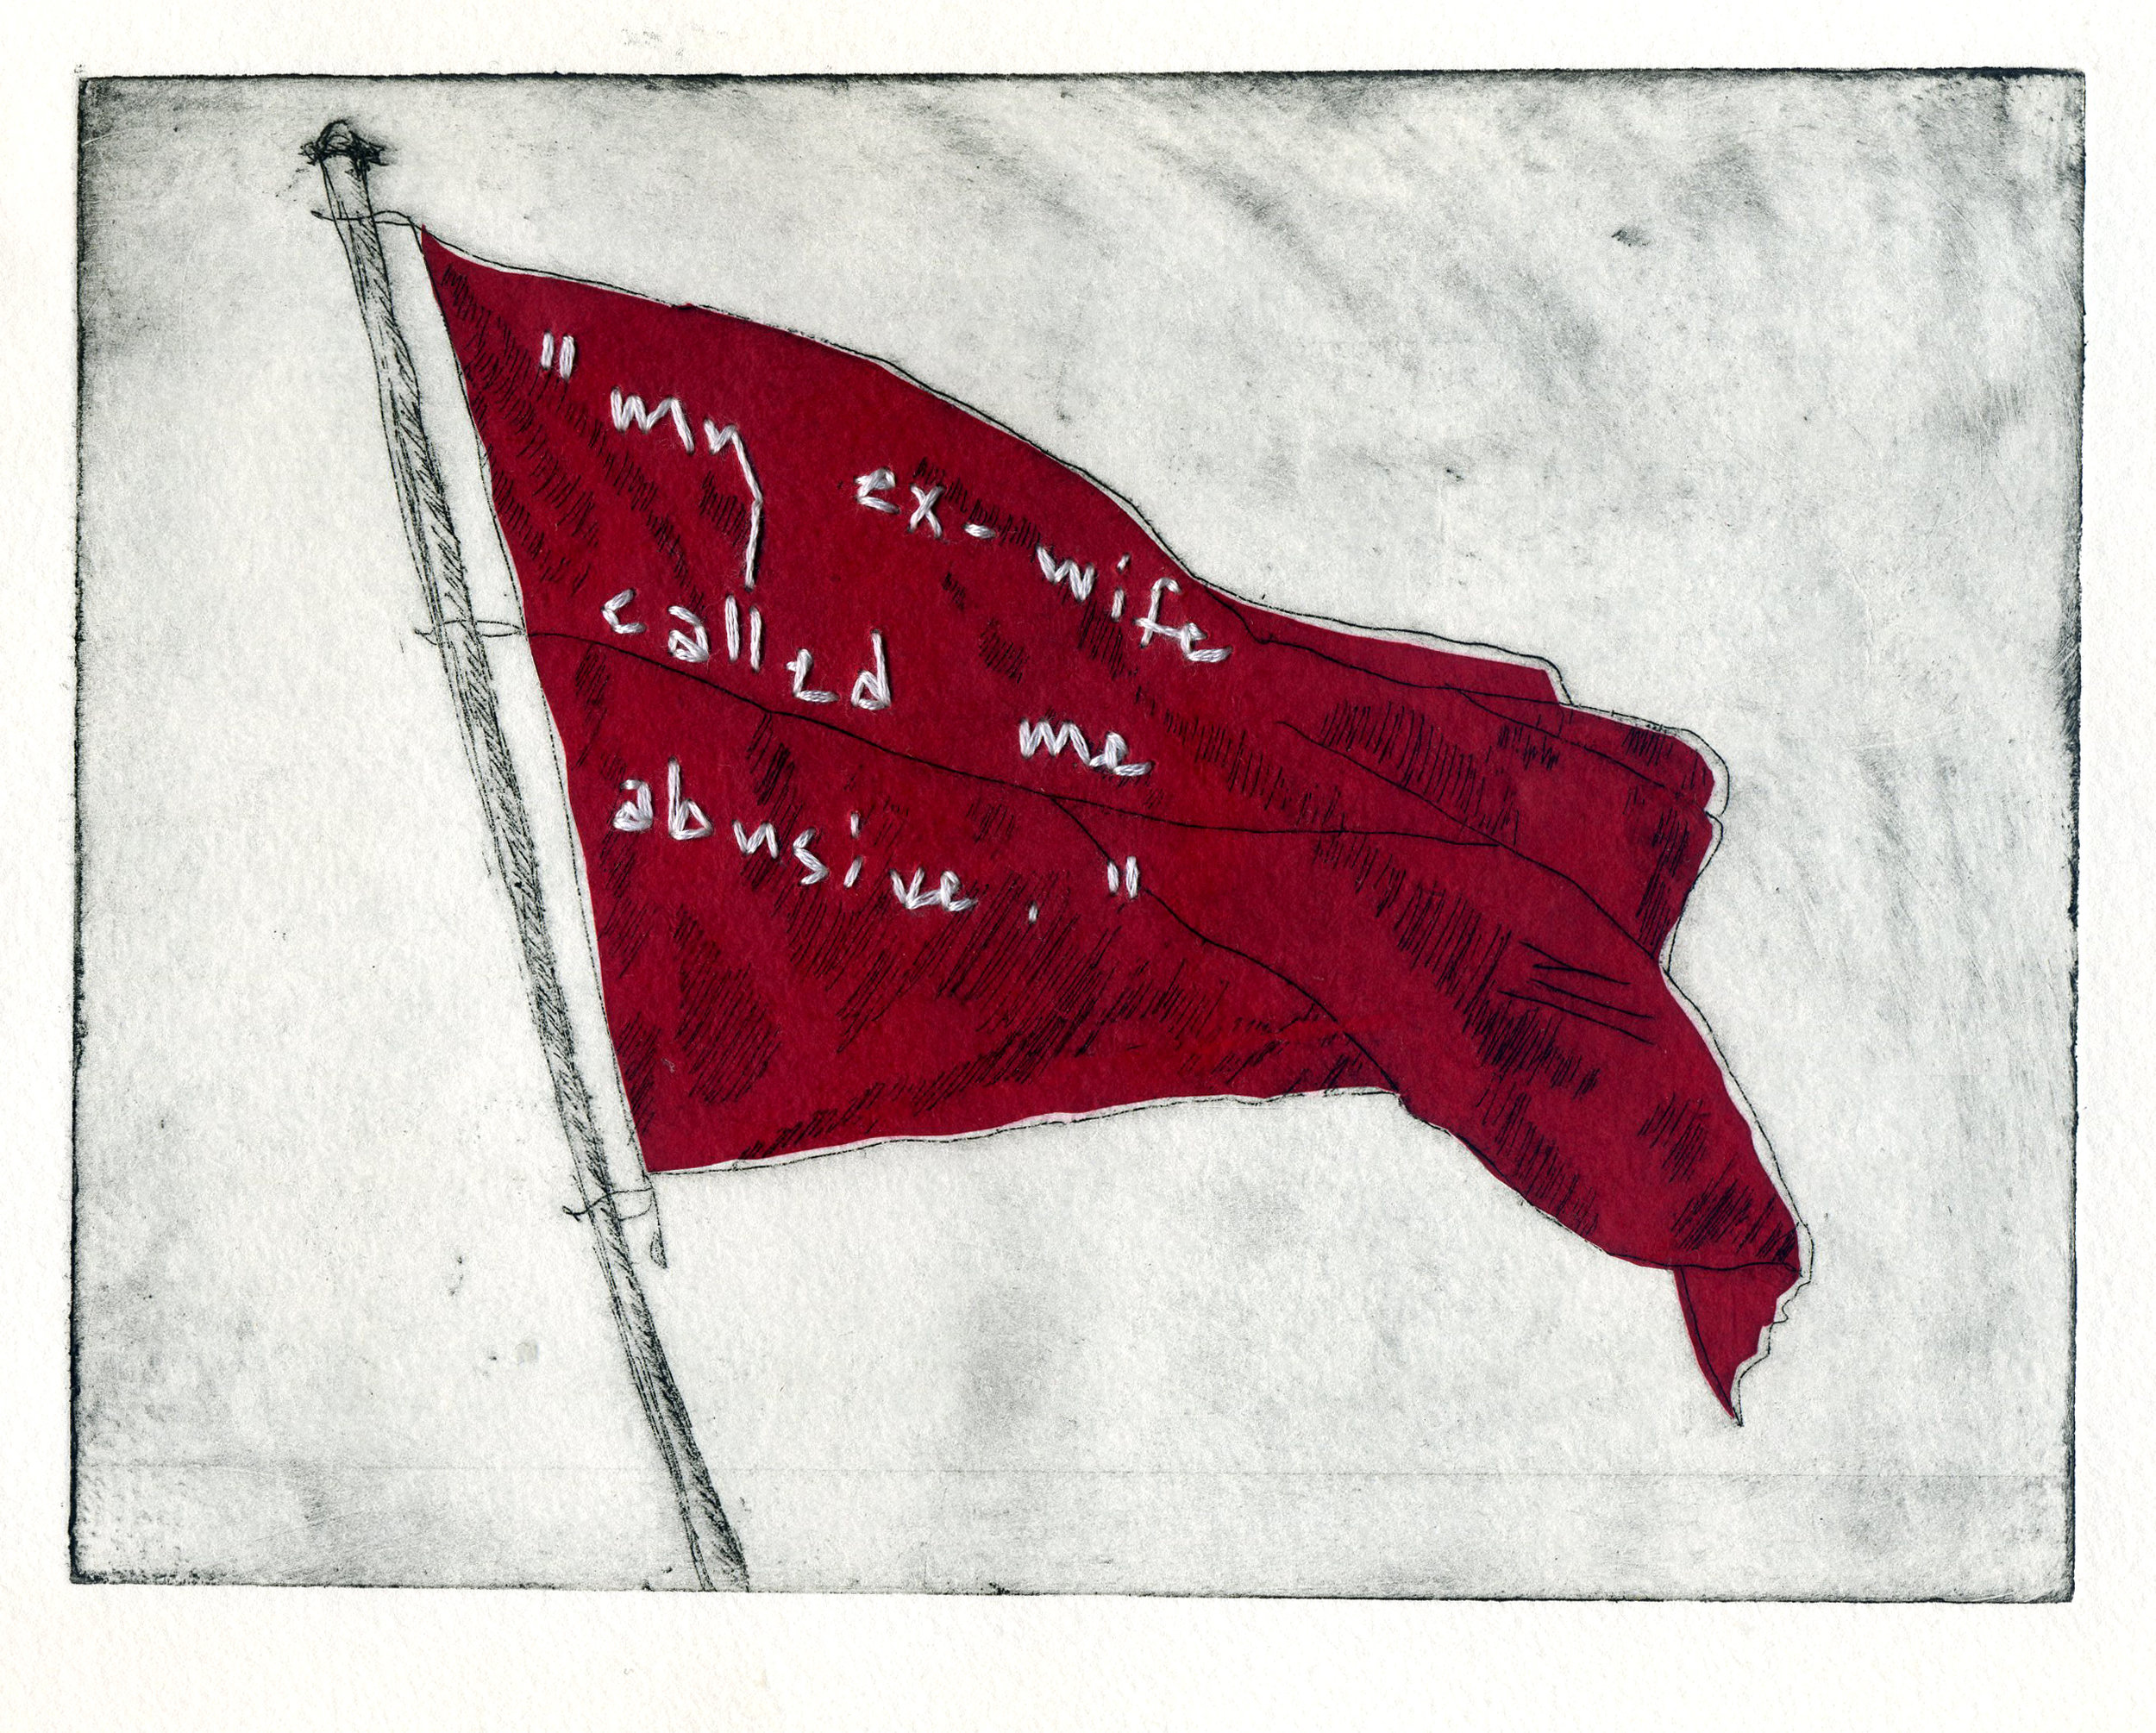 Red Flag Series: Ex-Wife Shelley Chamberlin, 2015 Intaglio and chine-colle with hand-embroidered text